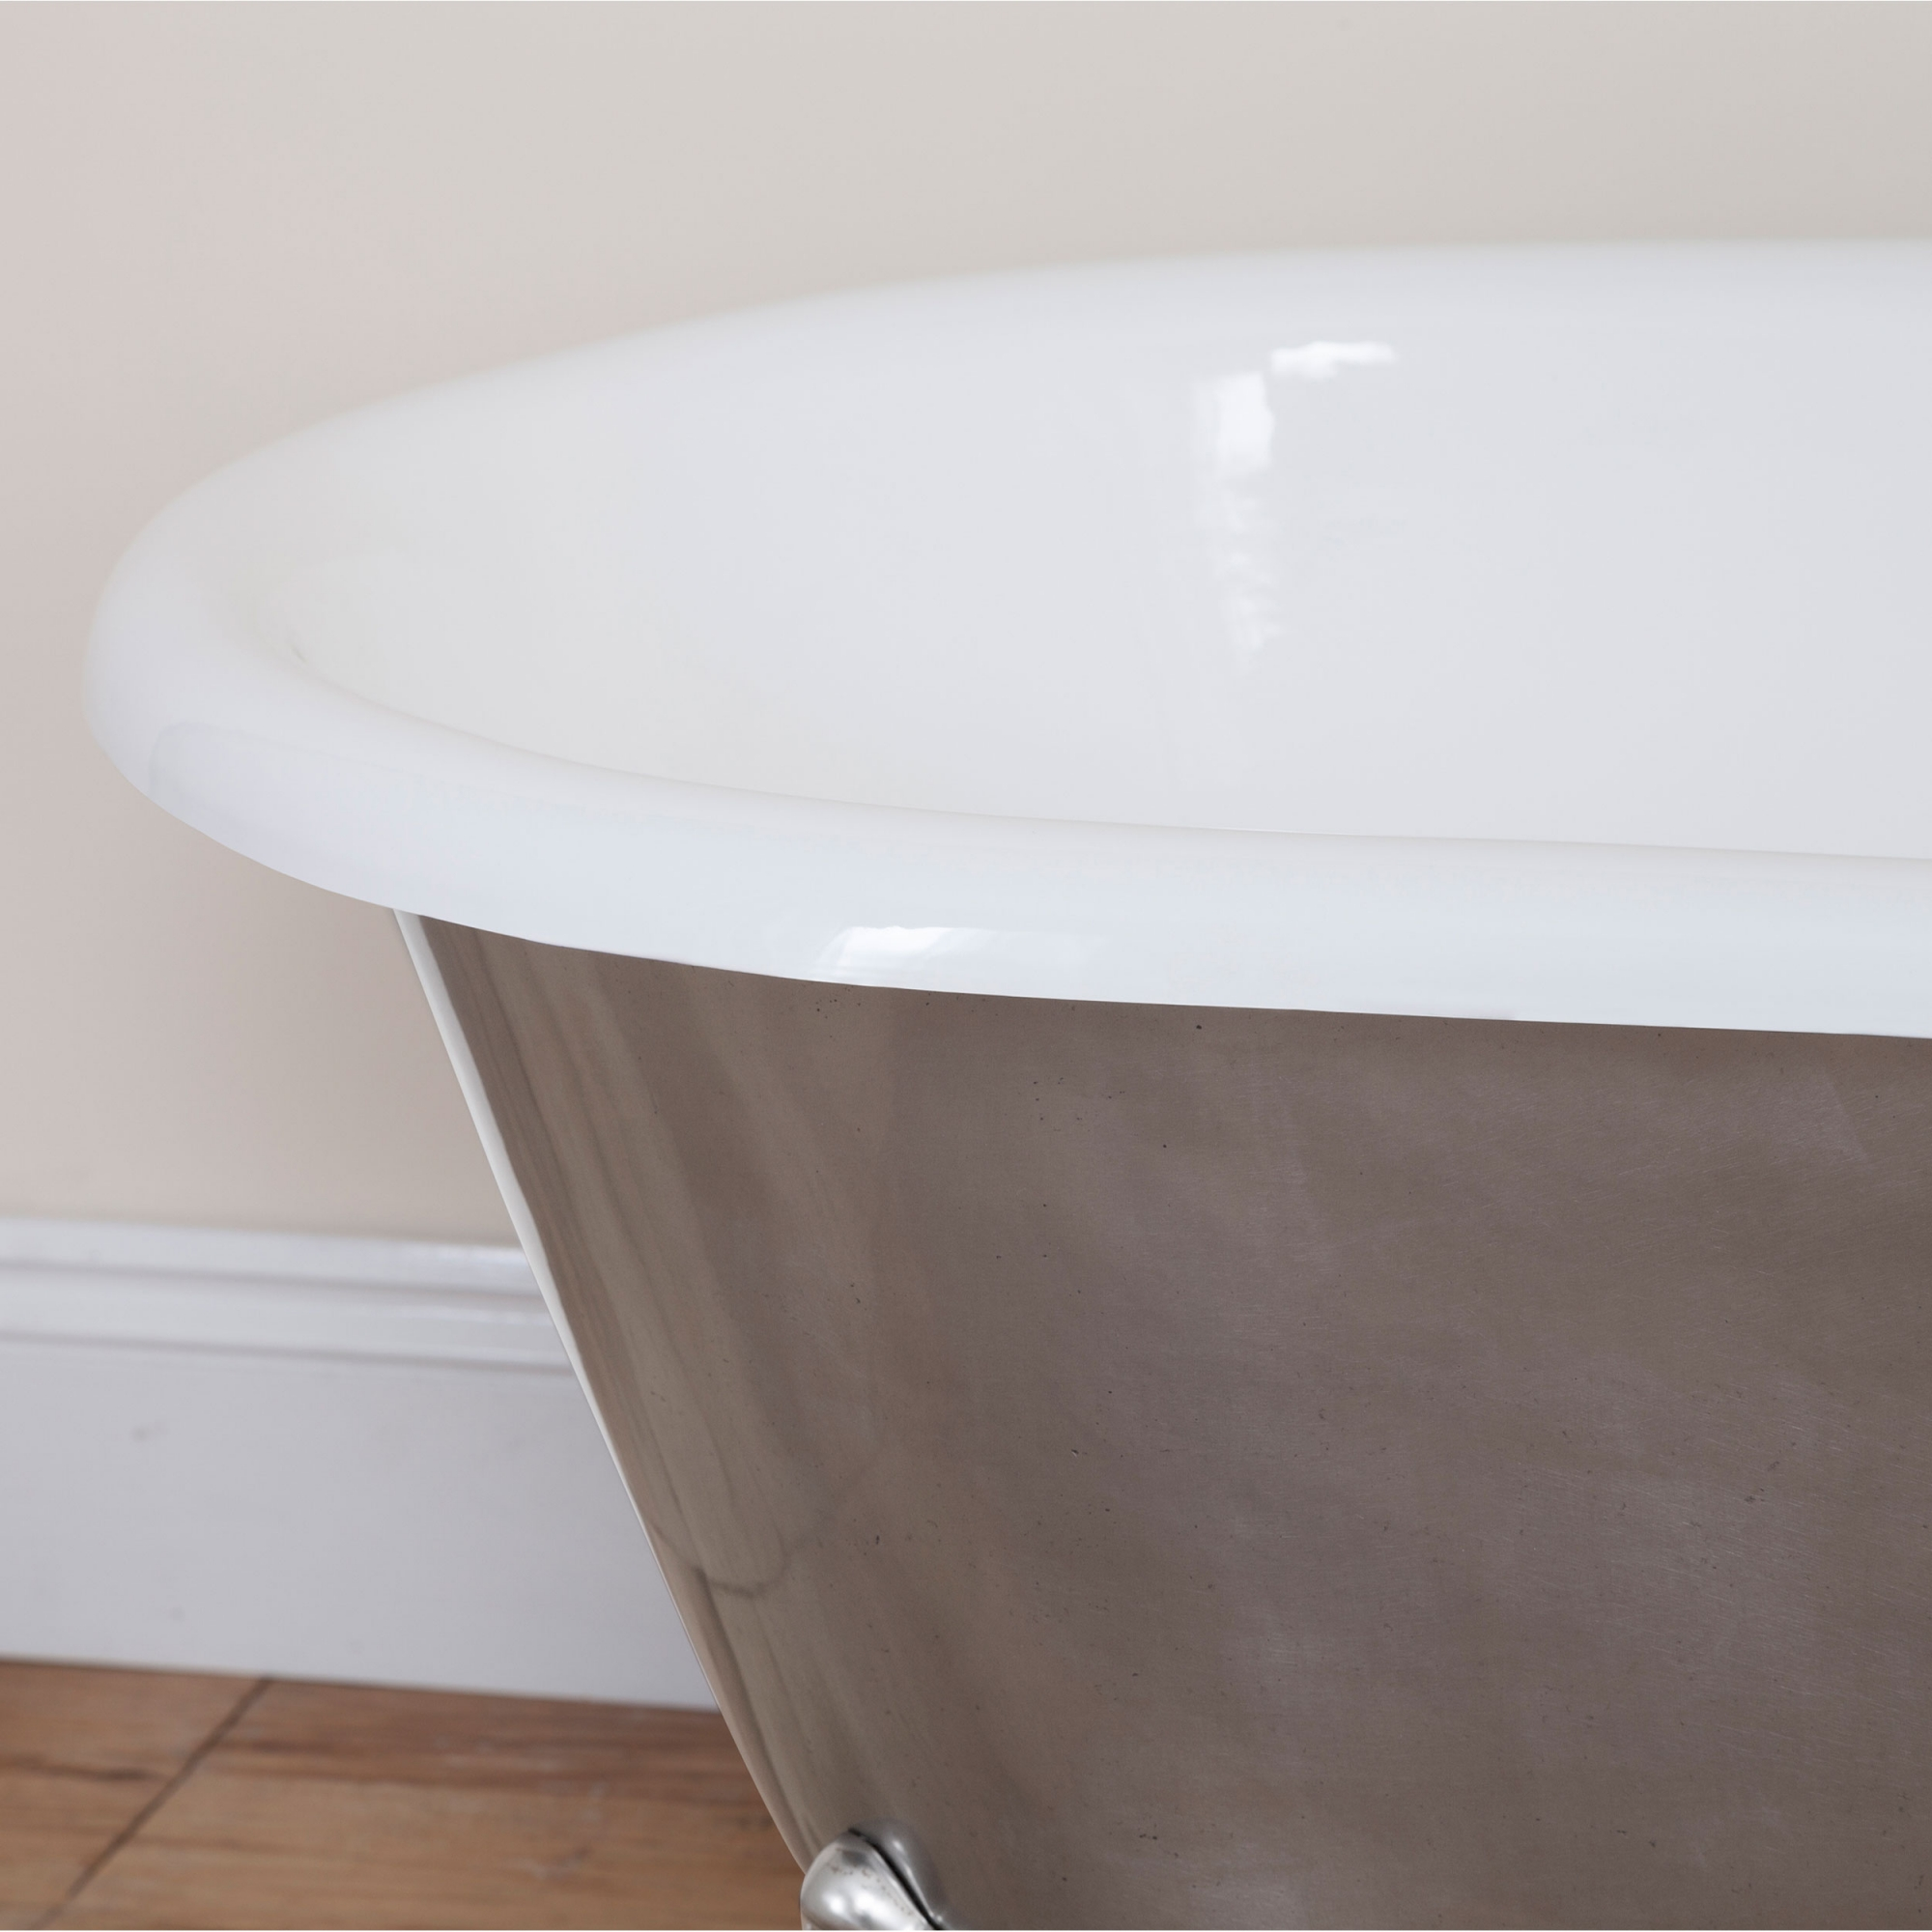 Jig Bisley Cast Iron Roll Top Bath including Full Polished Feet - 2 Tap Hole